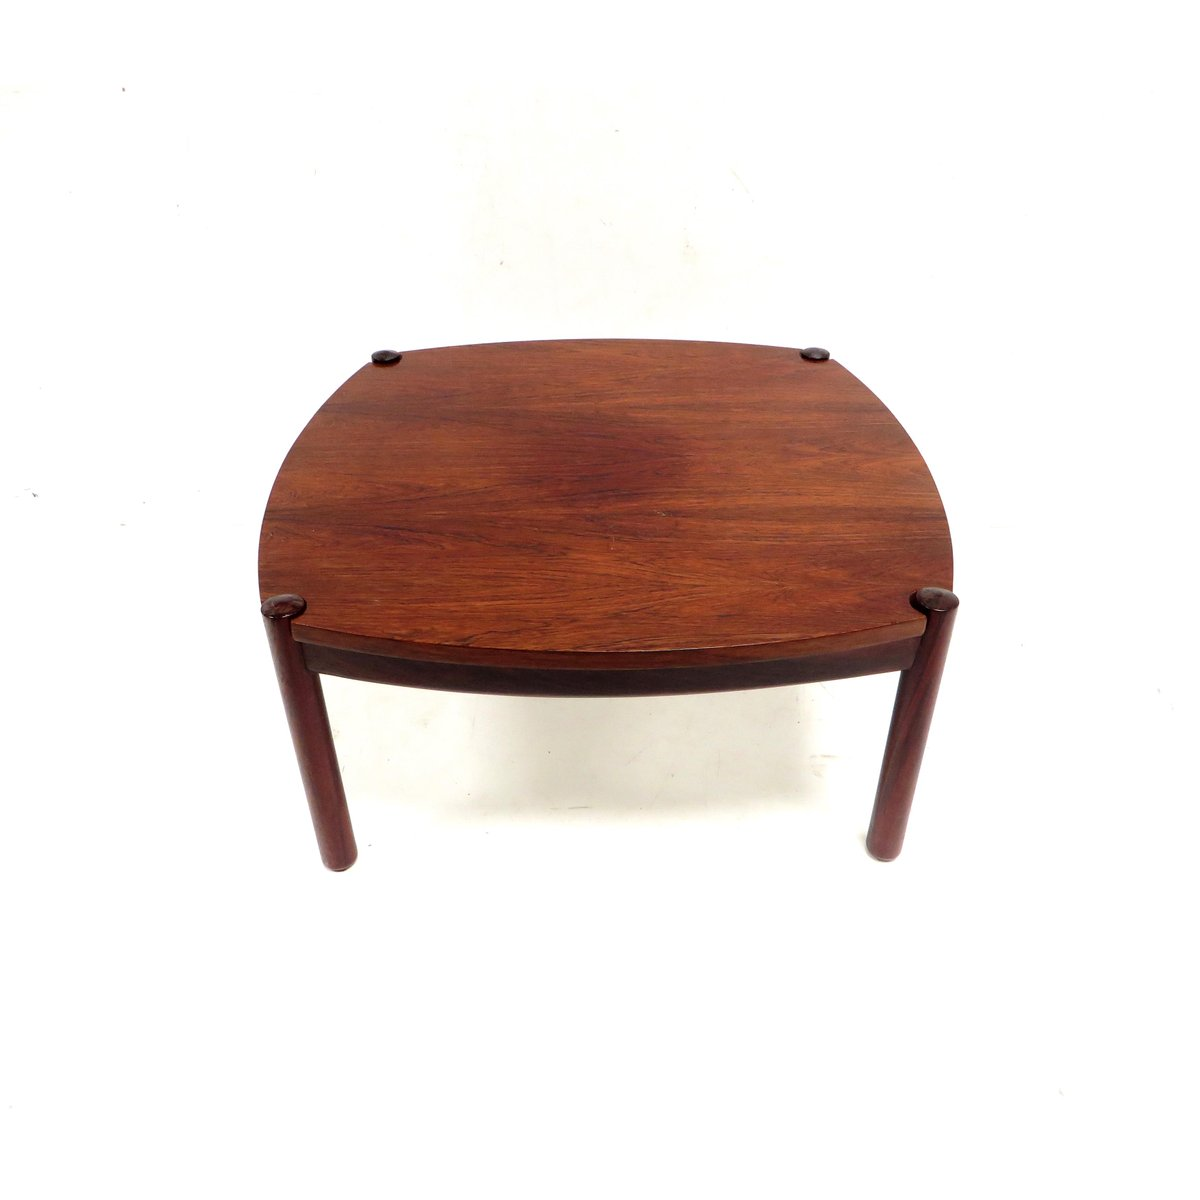 Sofa Corner Table Online: Leather Corner Sofa With Table, 1960s For Sale At Pamono